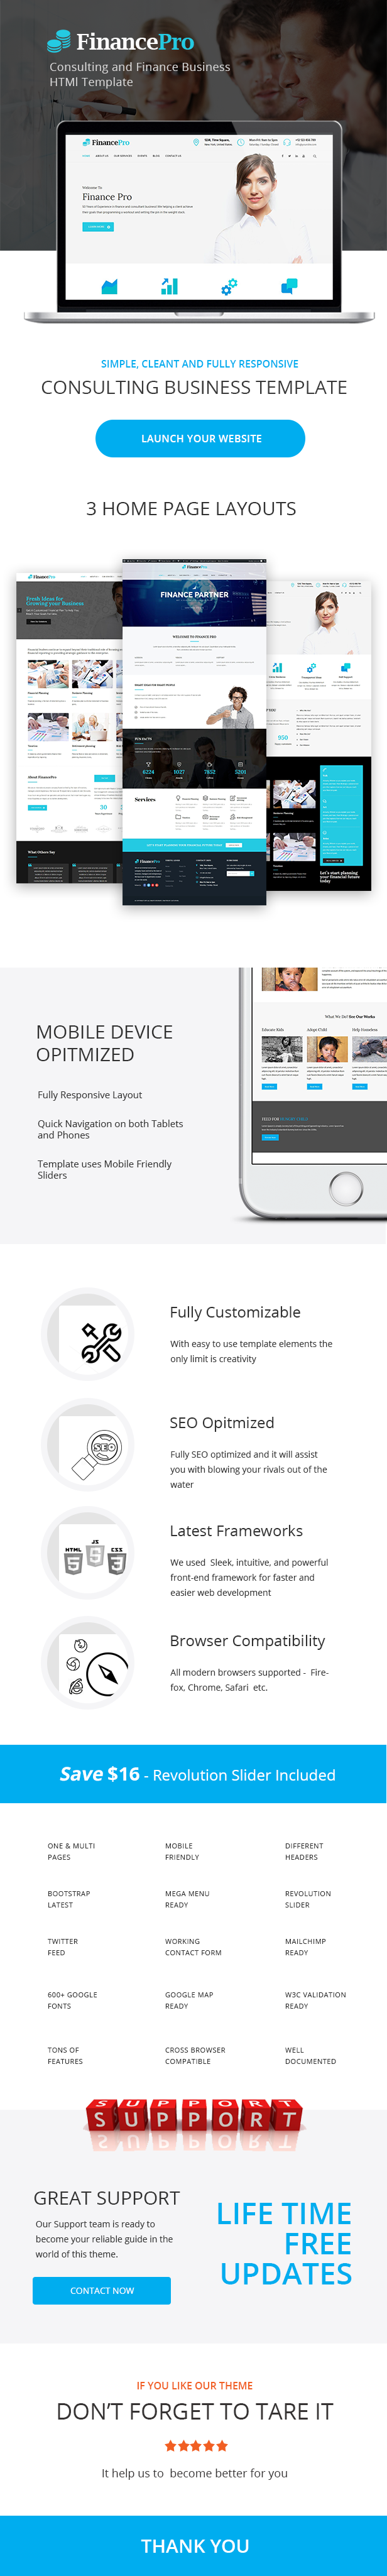 FinancePro - Consulting and Finance Business HTML Template - 4